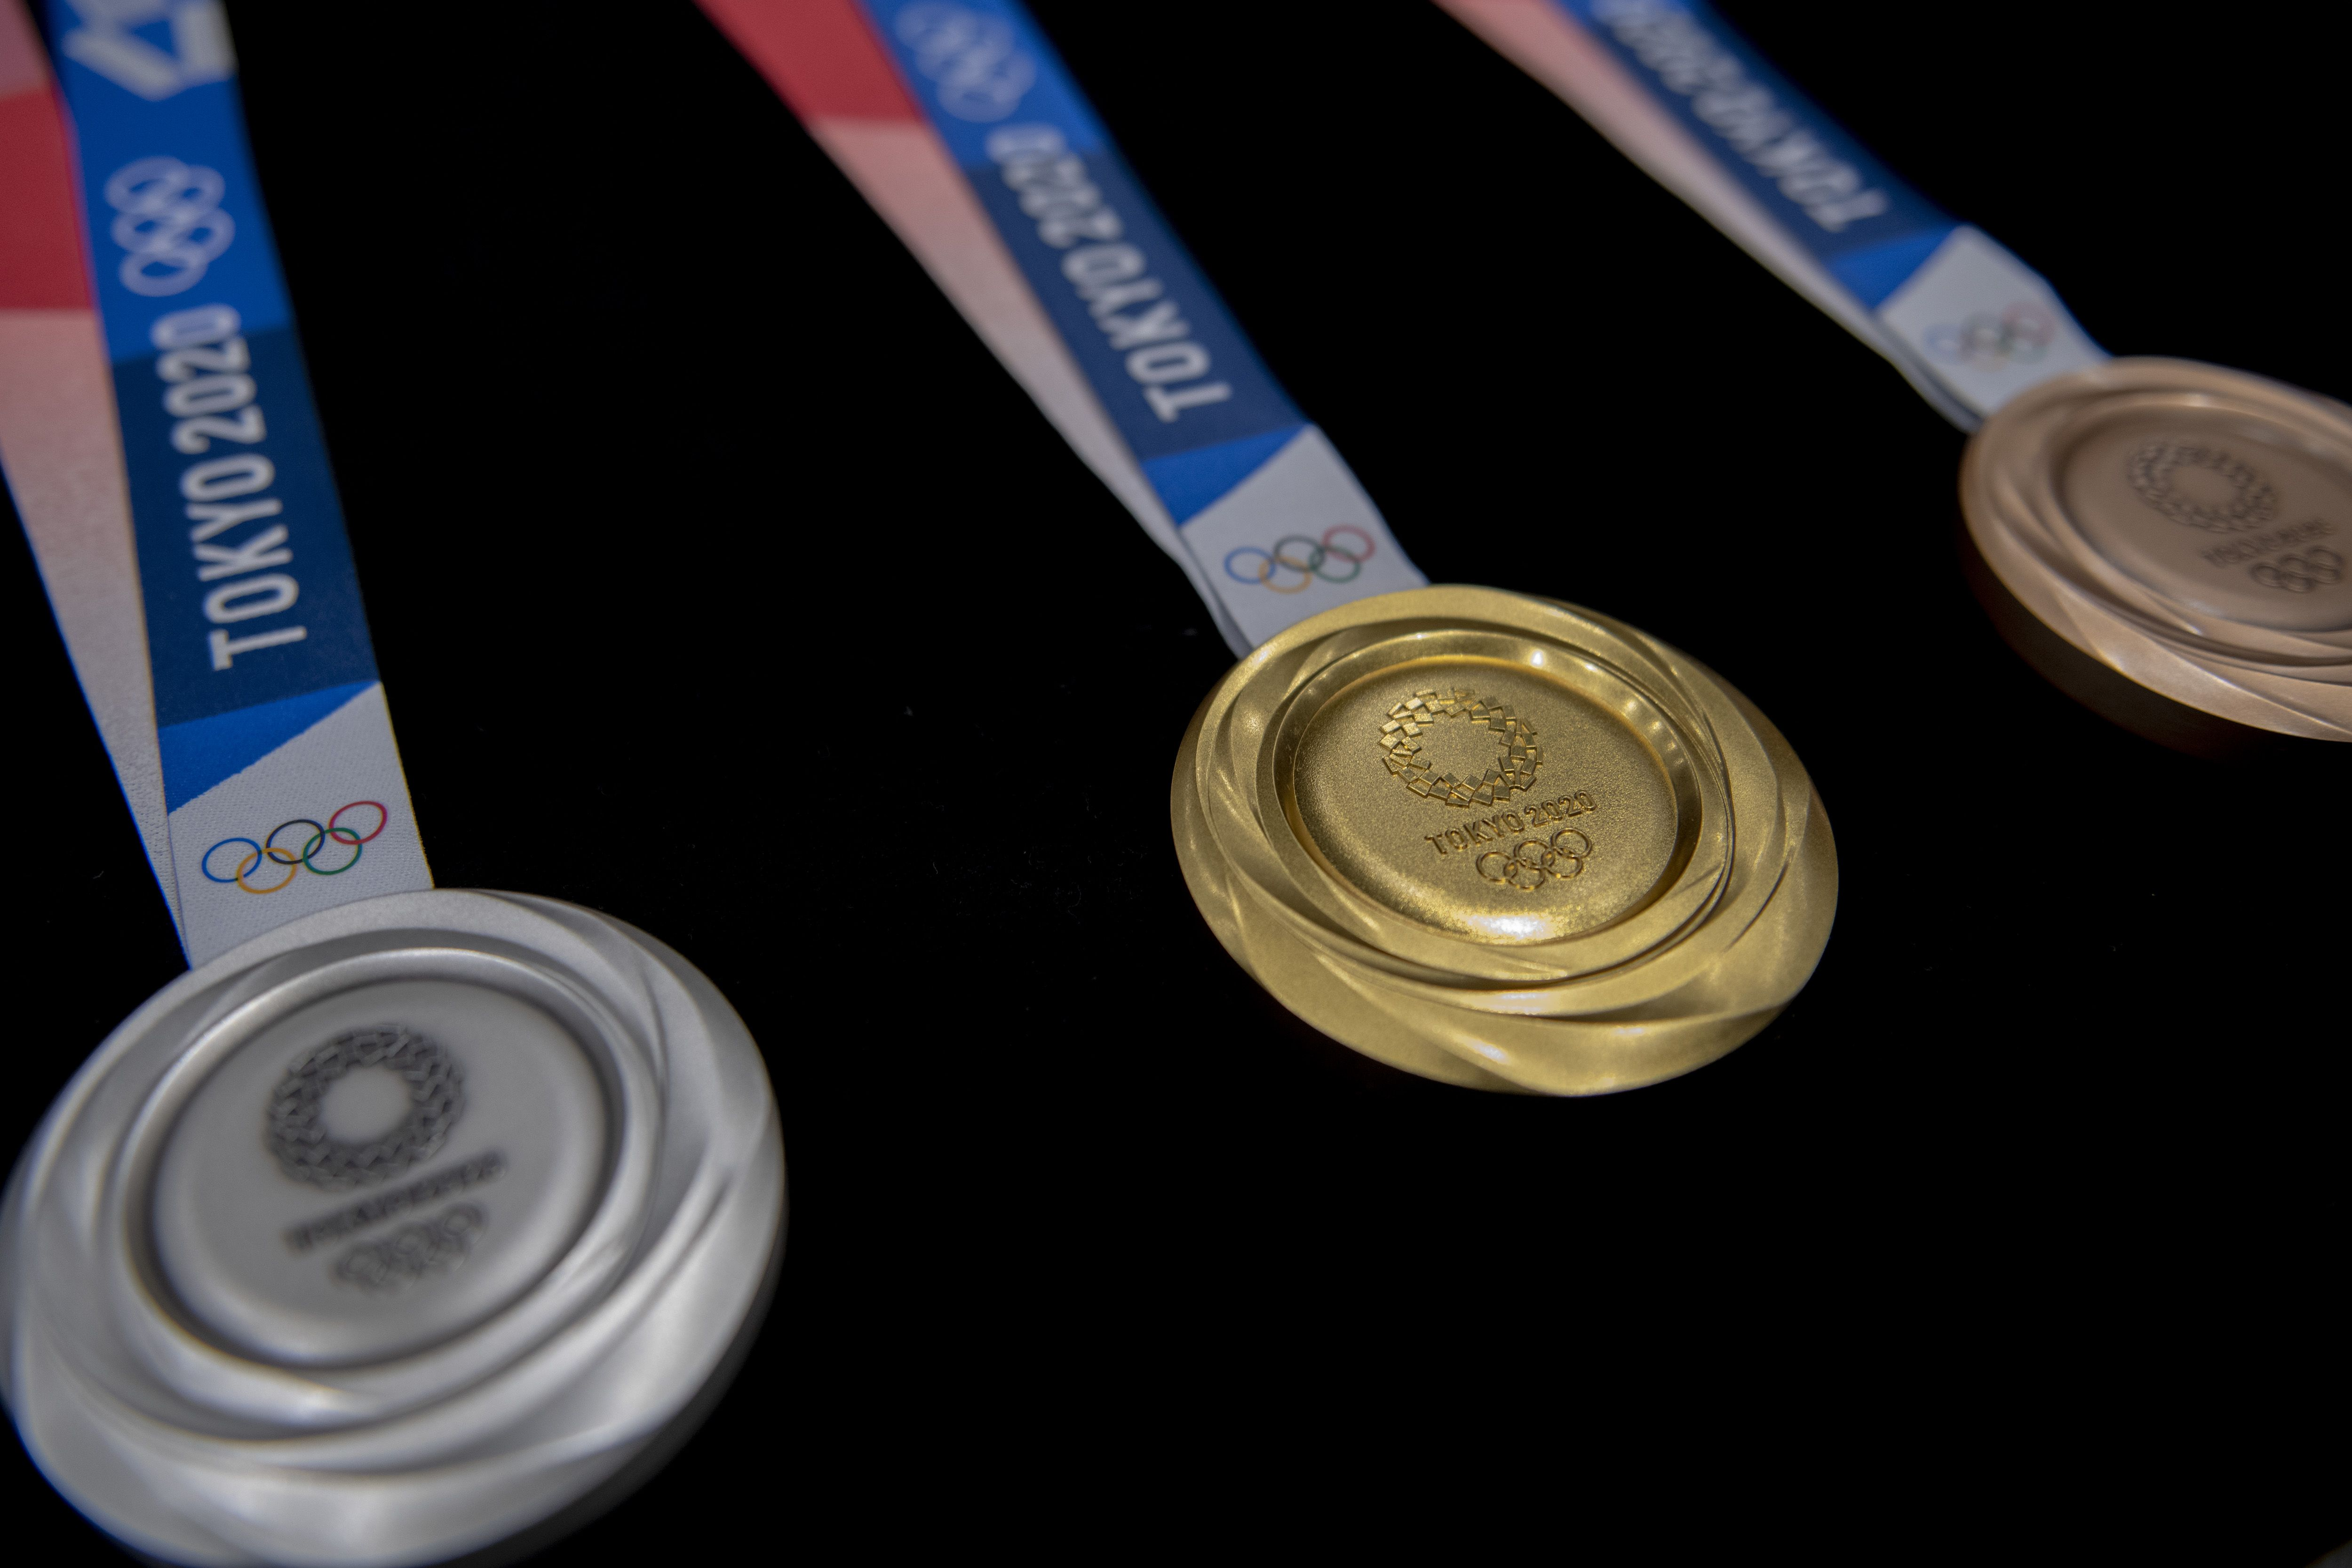 Best Stethoscope 2020 The 2020 Olympic Medals Will Be Made from Recycled Gadgets